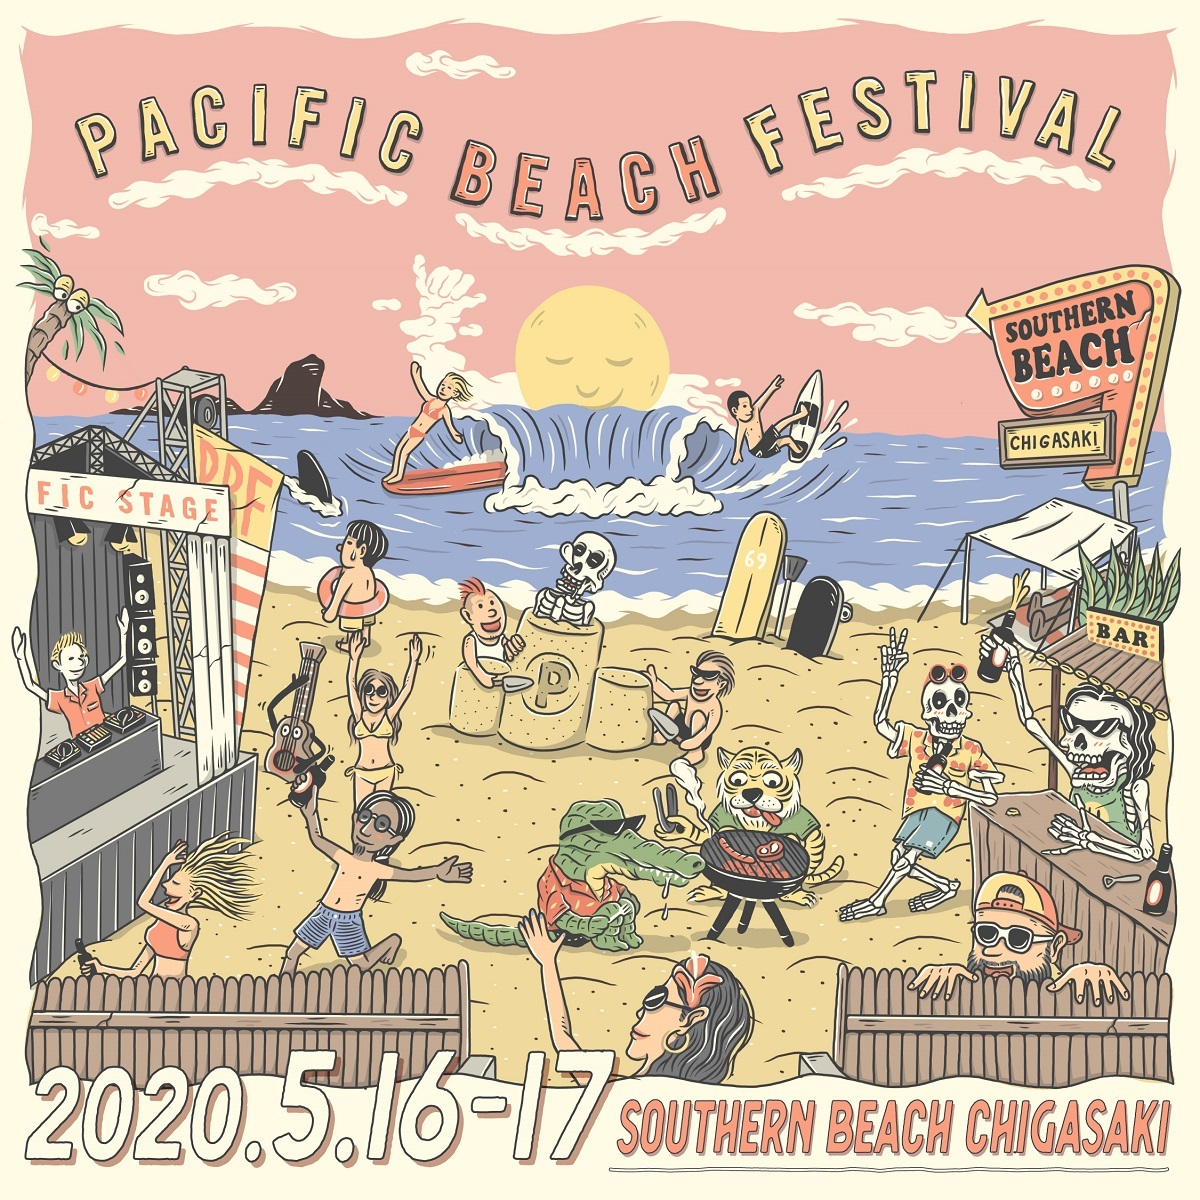 PACIFICBEACH FESTIVAL'20